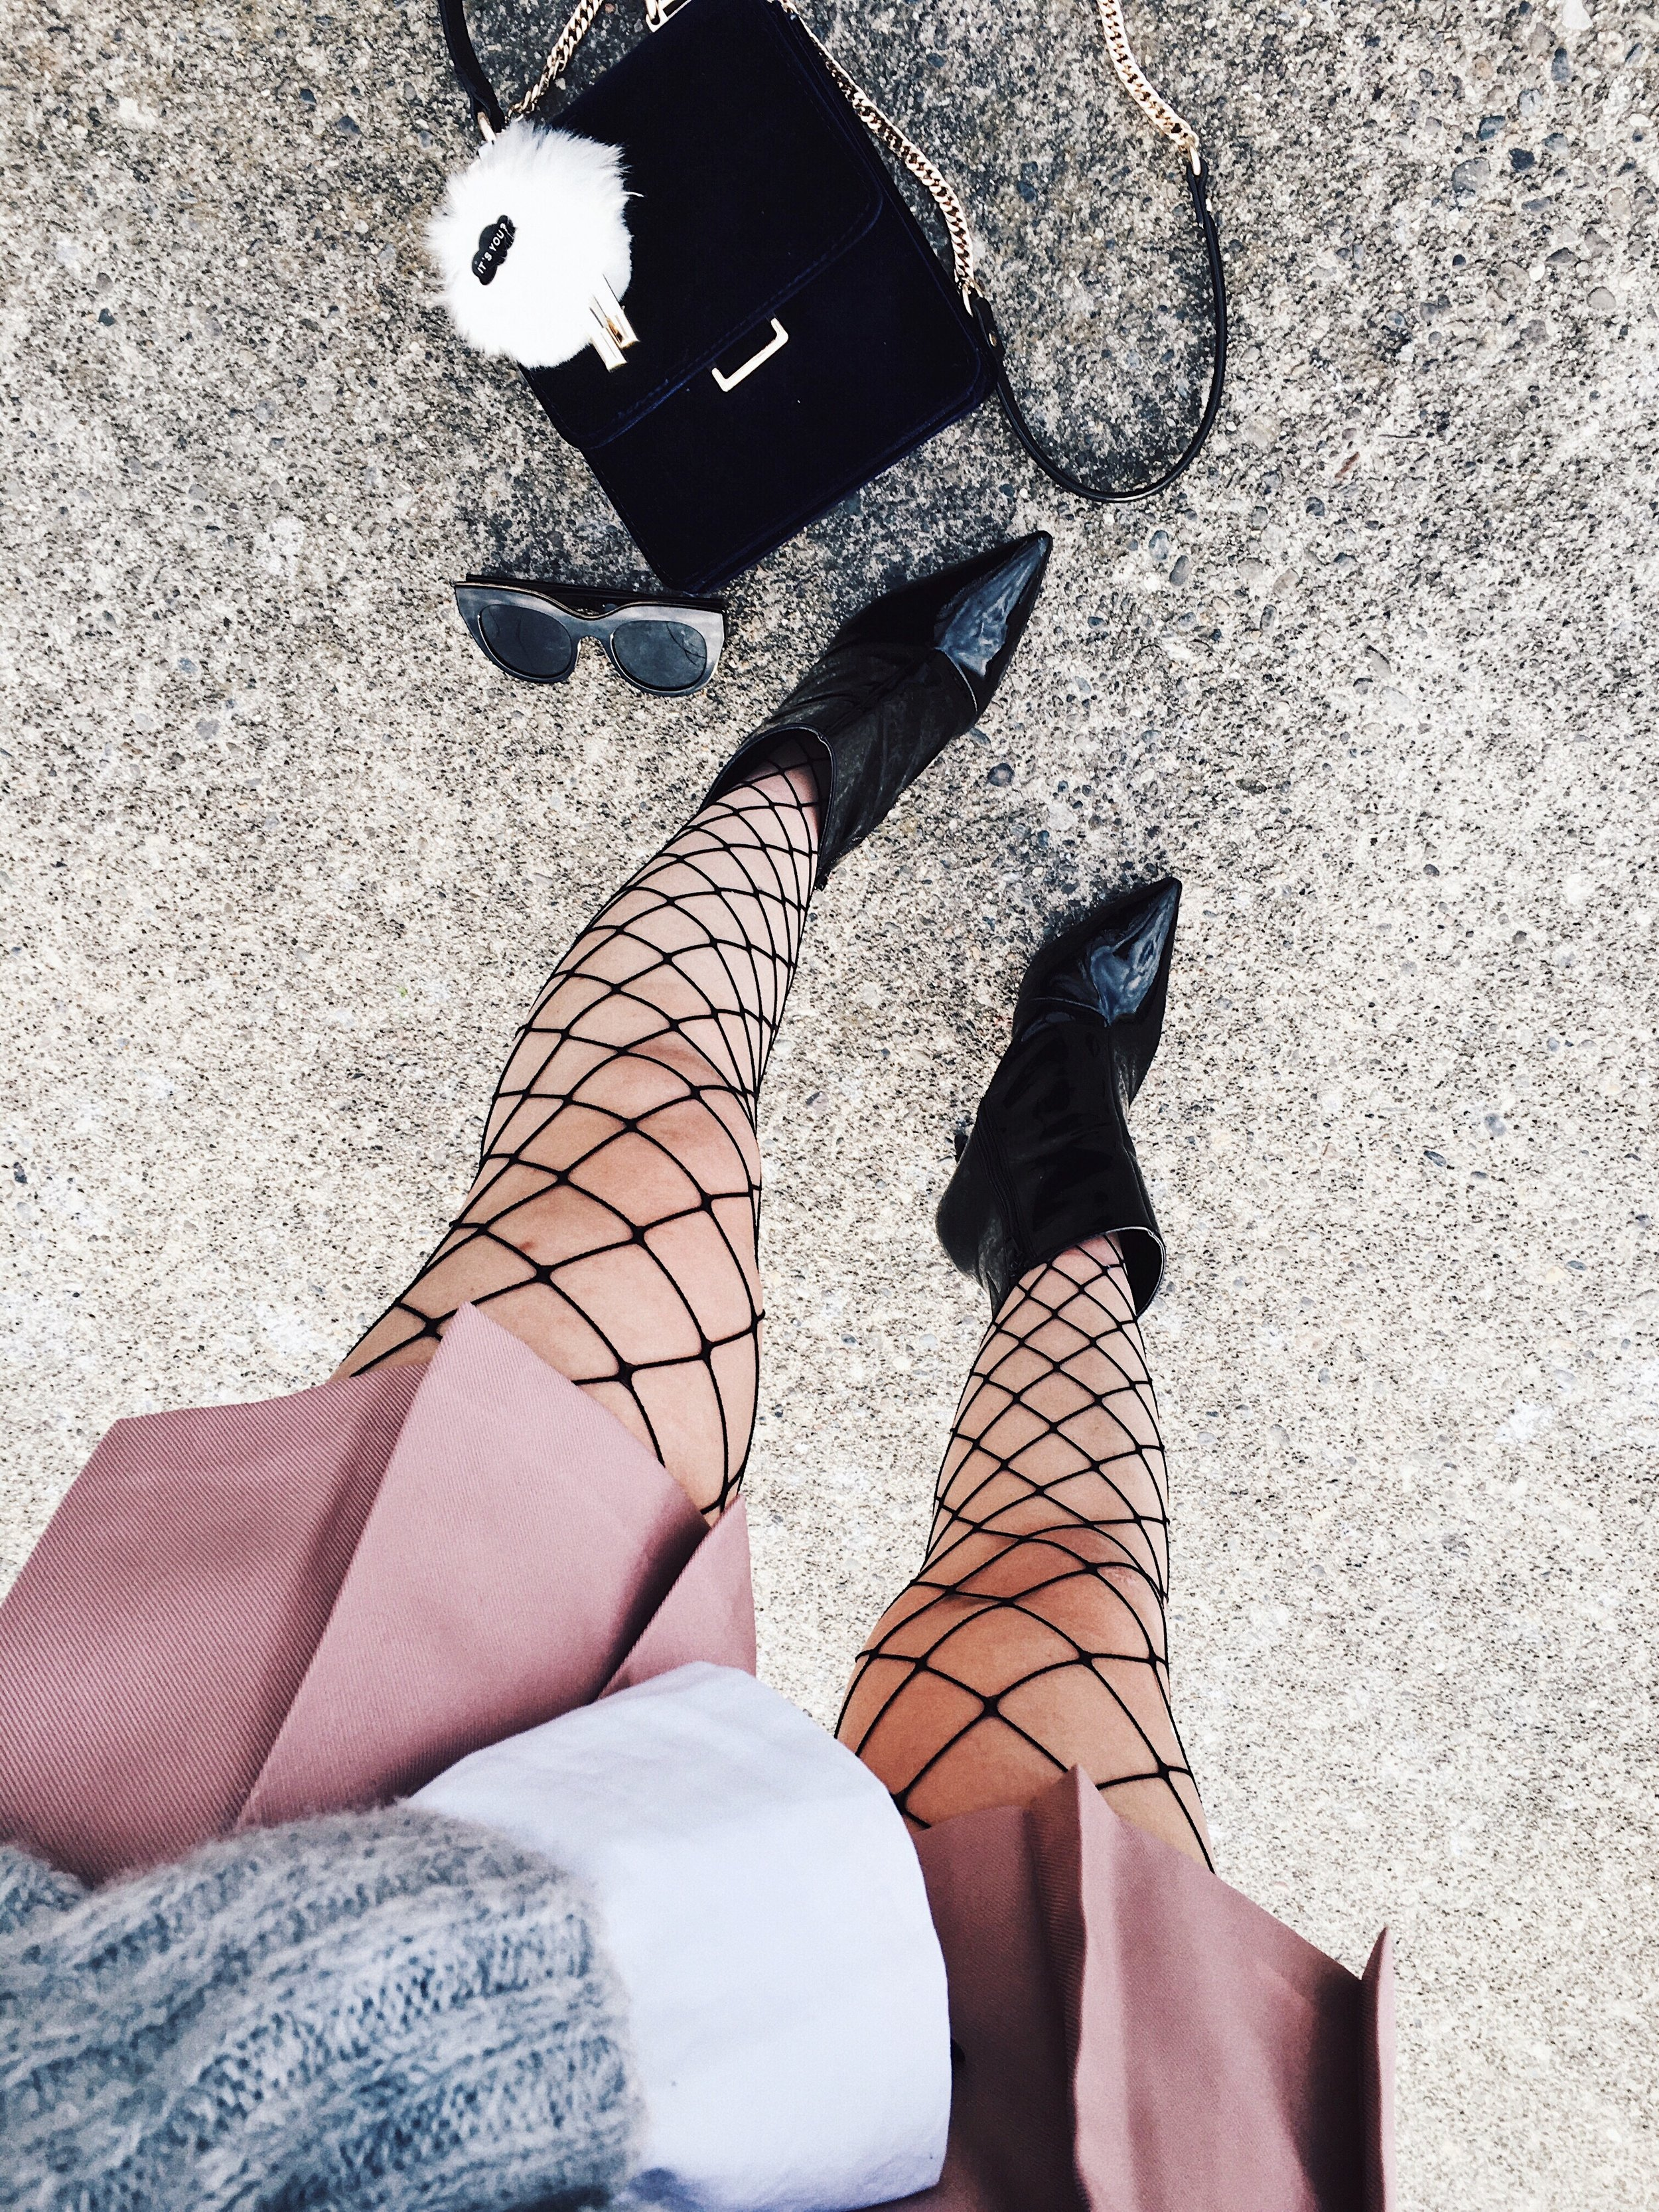 Aika's Love Closet-90's trend-fishnet tights and socks-inspiration-street style-Seattle Fashion Blogger from Japan 18